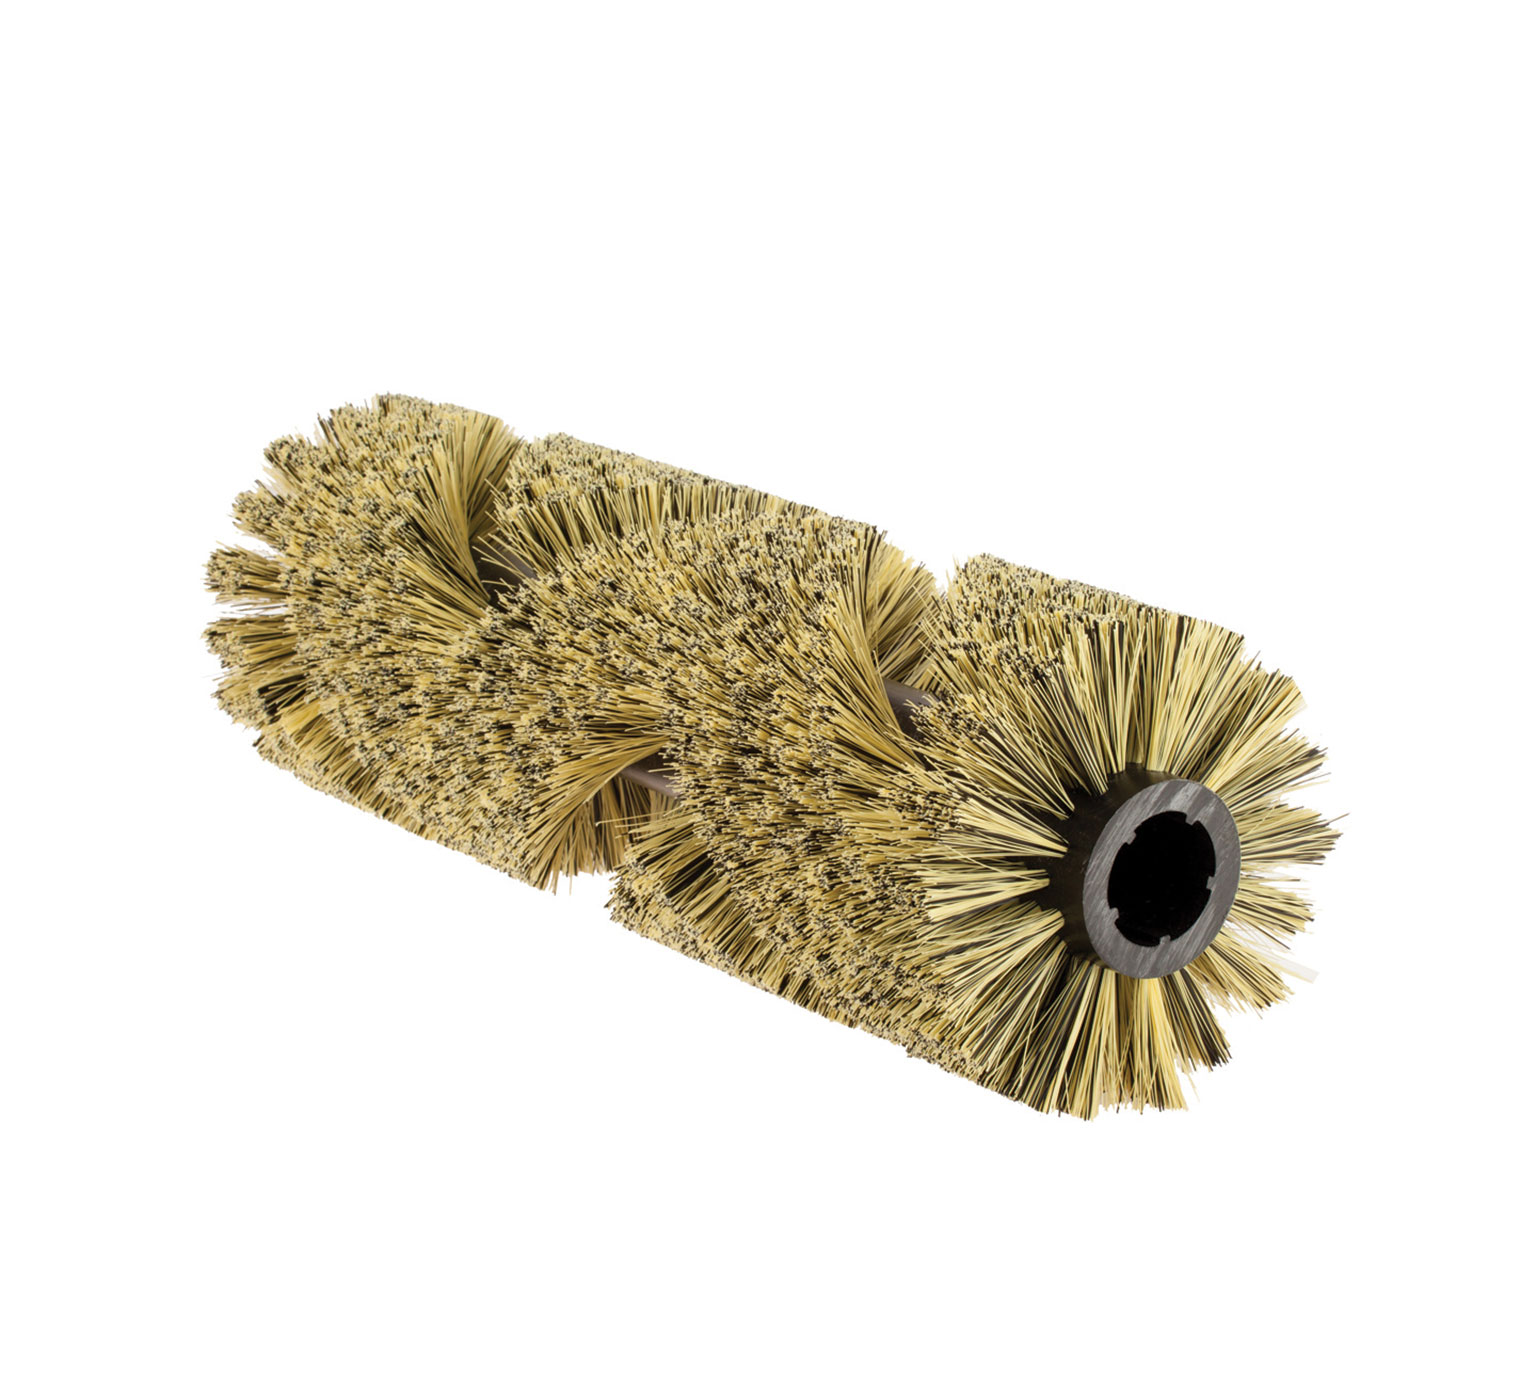 80351 Polypropylene Wedge Brush – 24 x 8 in alt 1